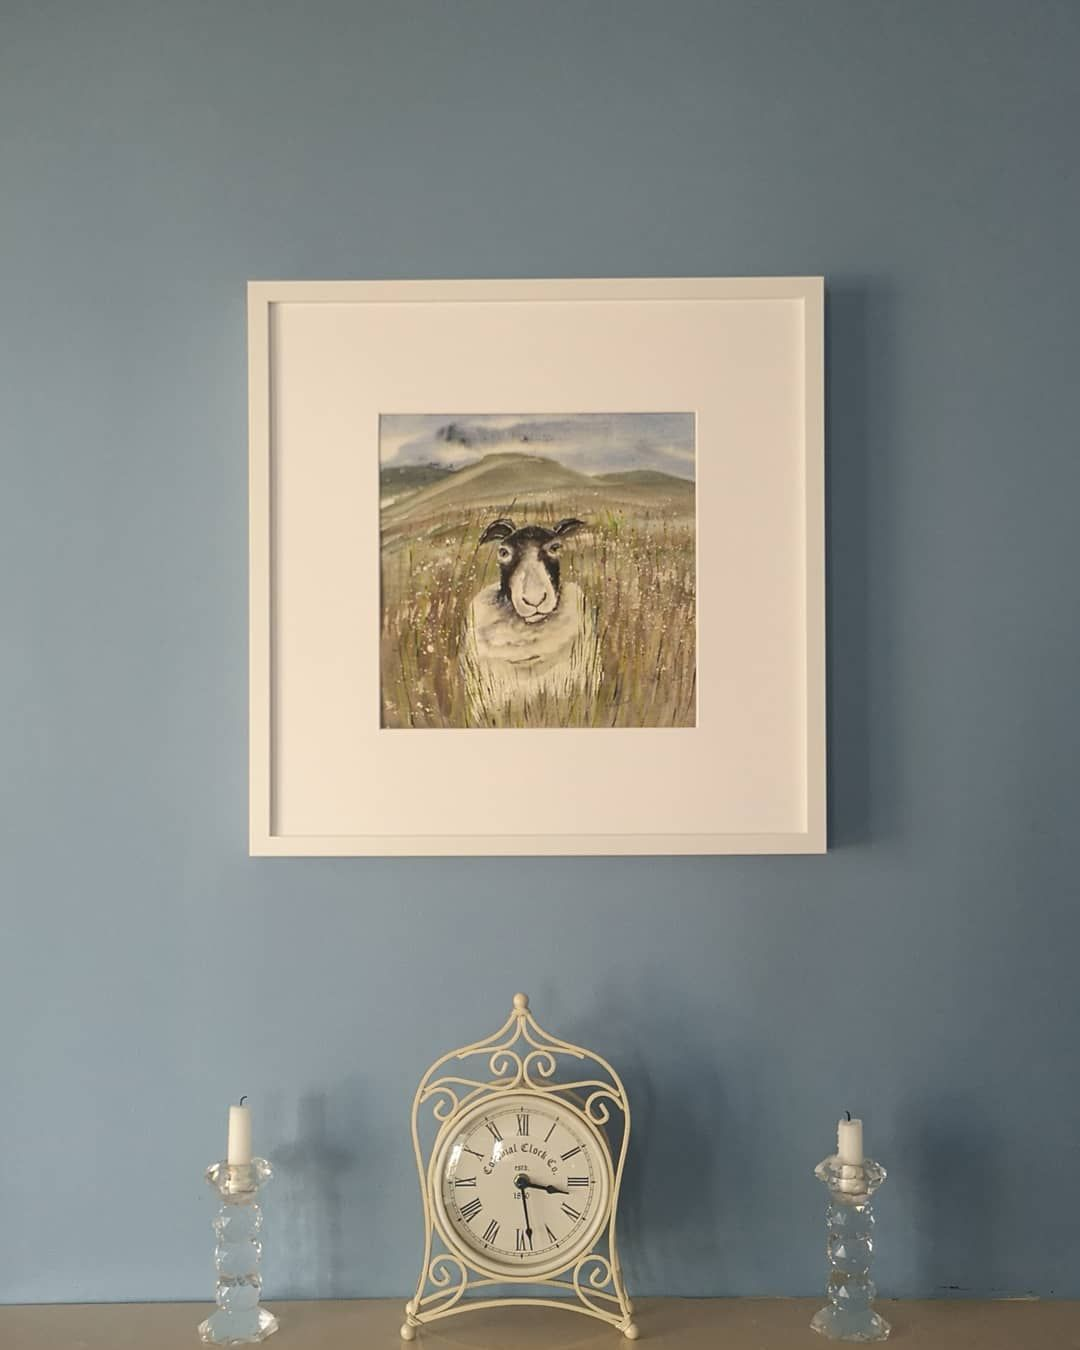 On the wall. #sheep #art #watercolour #artforsale #gallery